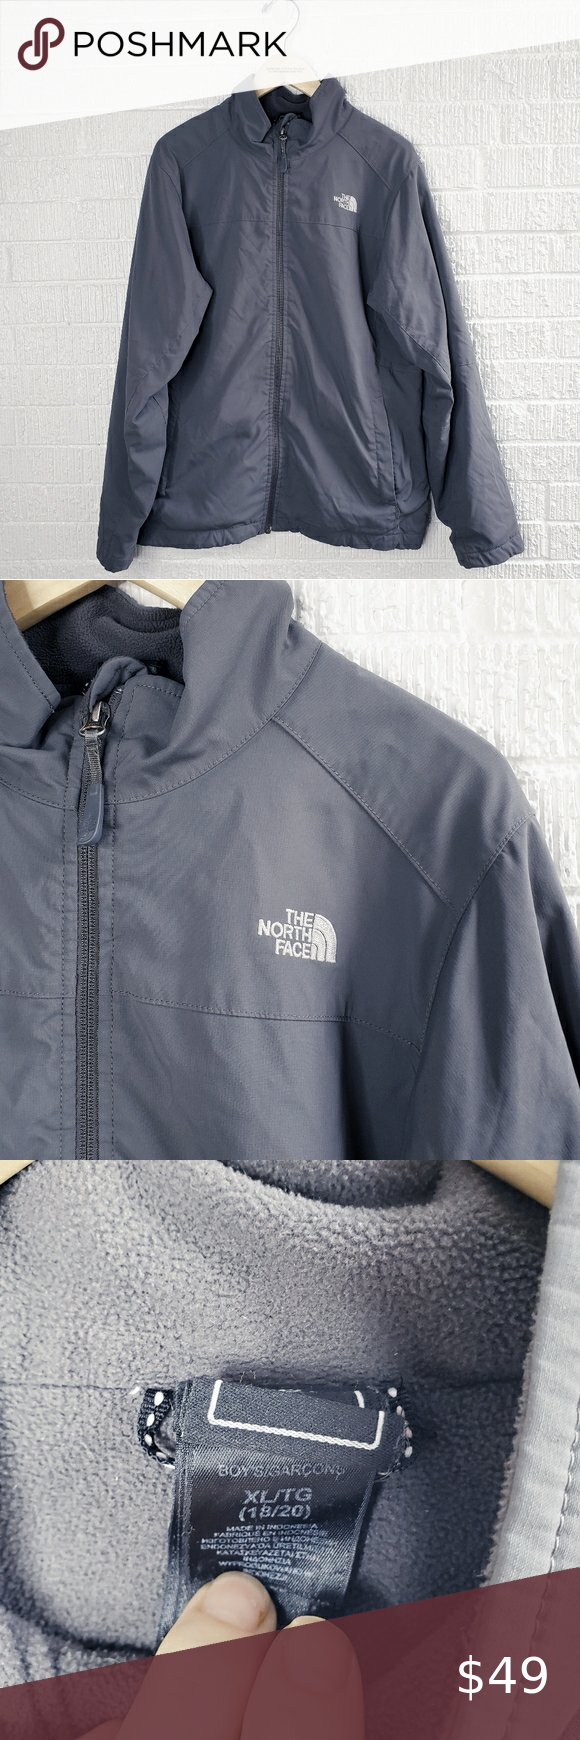 Boys North Face Jacket Gently Used Condition Fleeced Lined The North Face Jackets Coats North Face Jacket Jackets The North Face [ 1740 x 580 Pixel ]